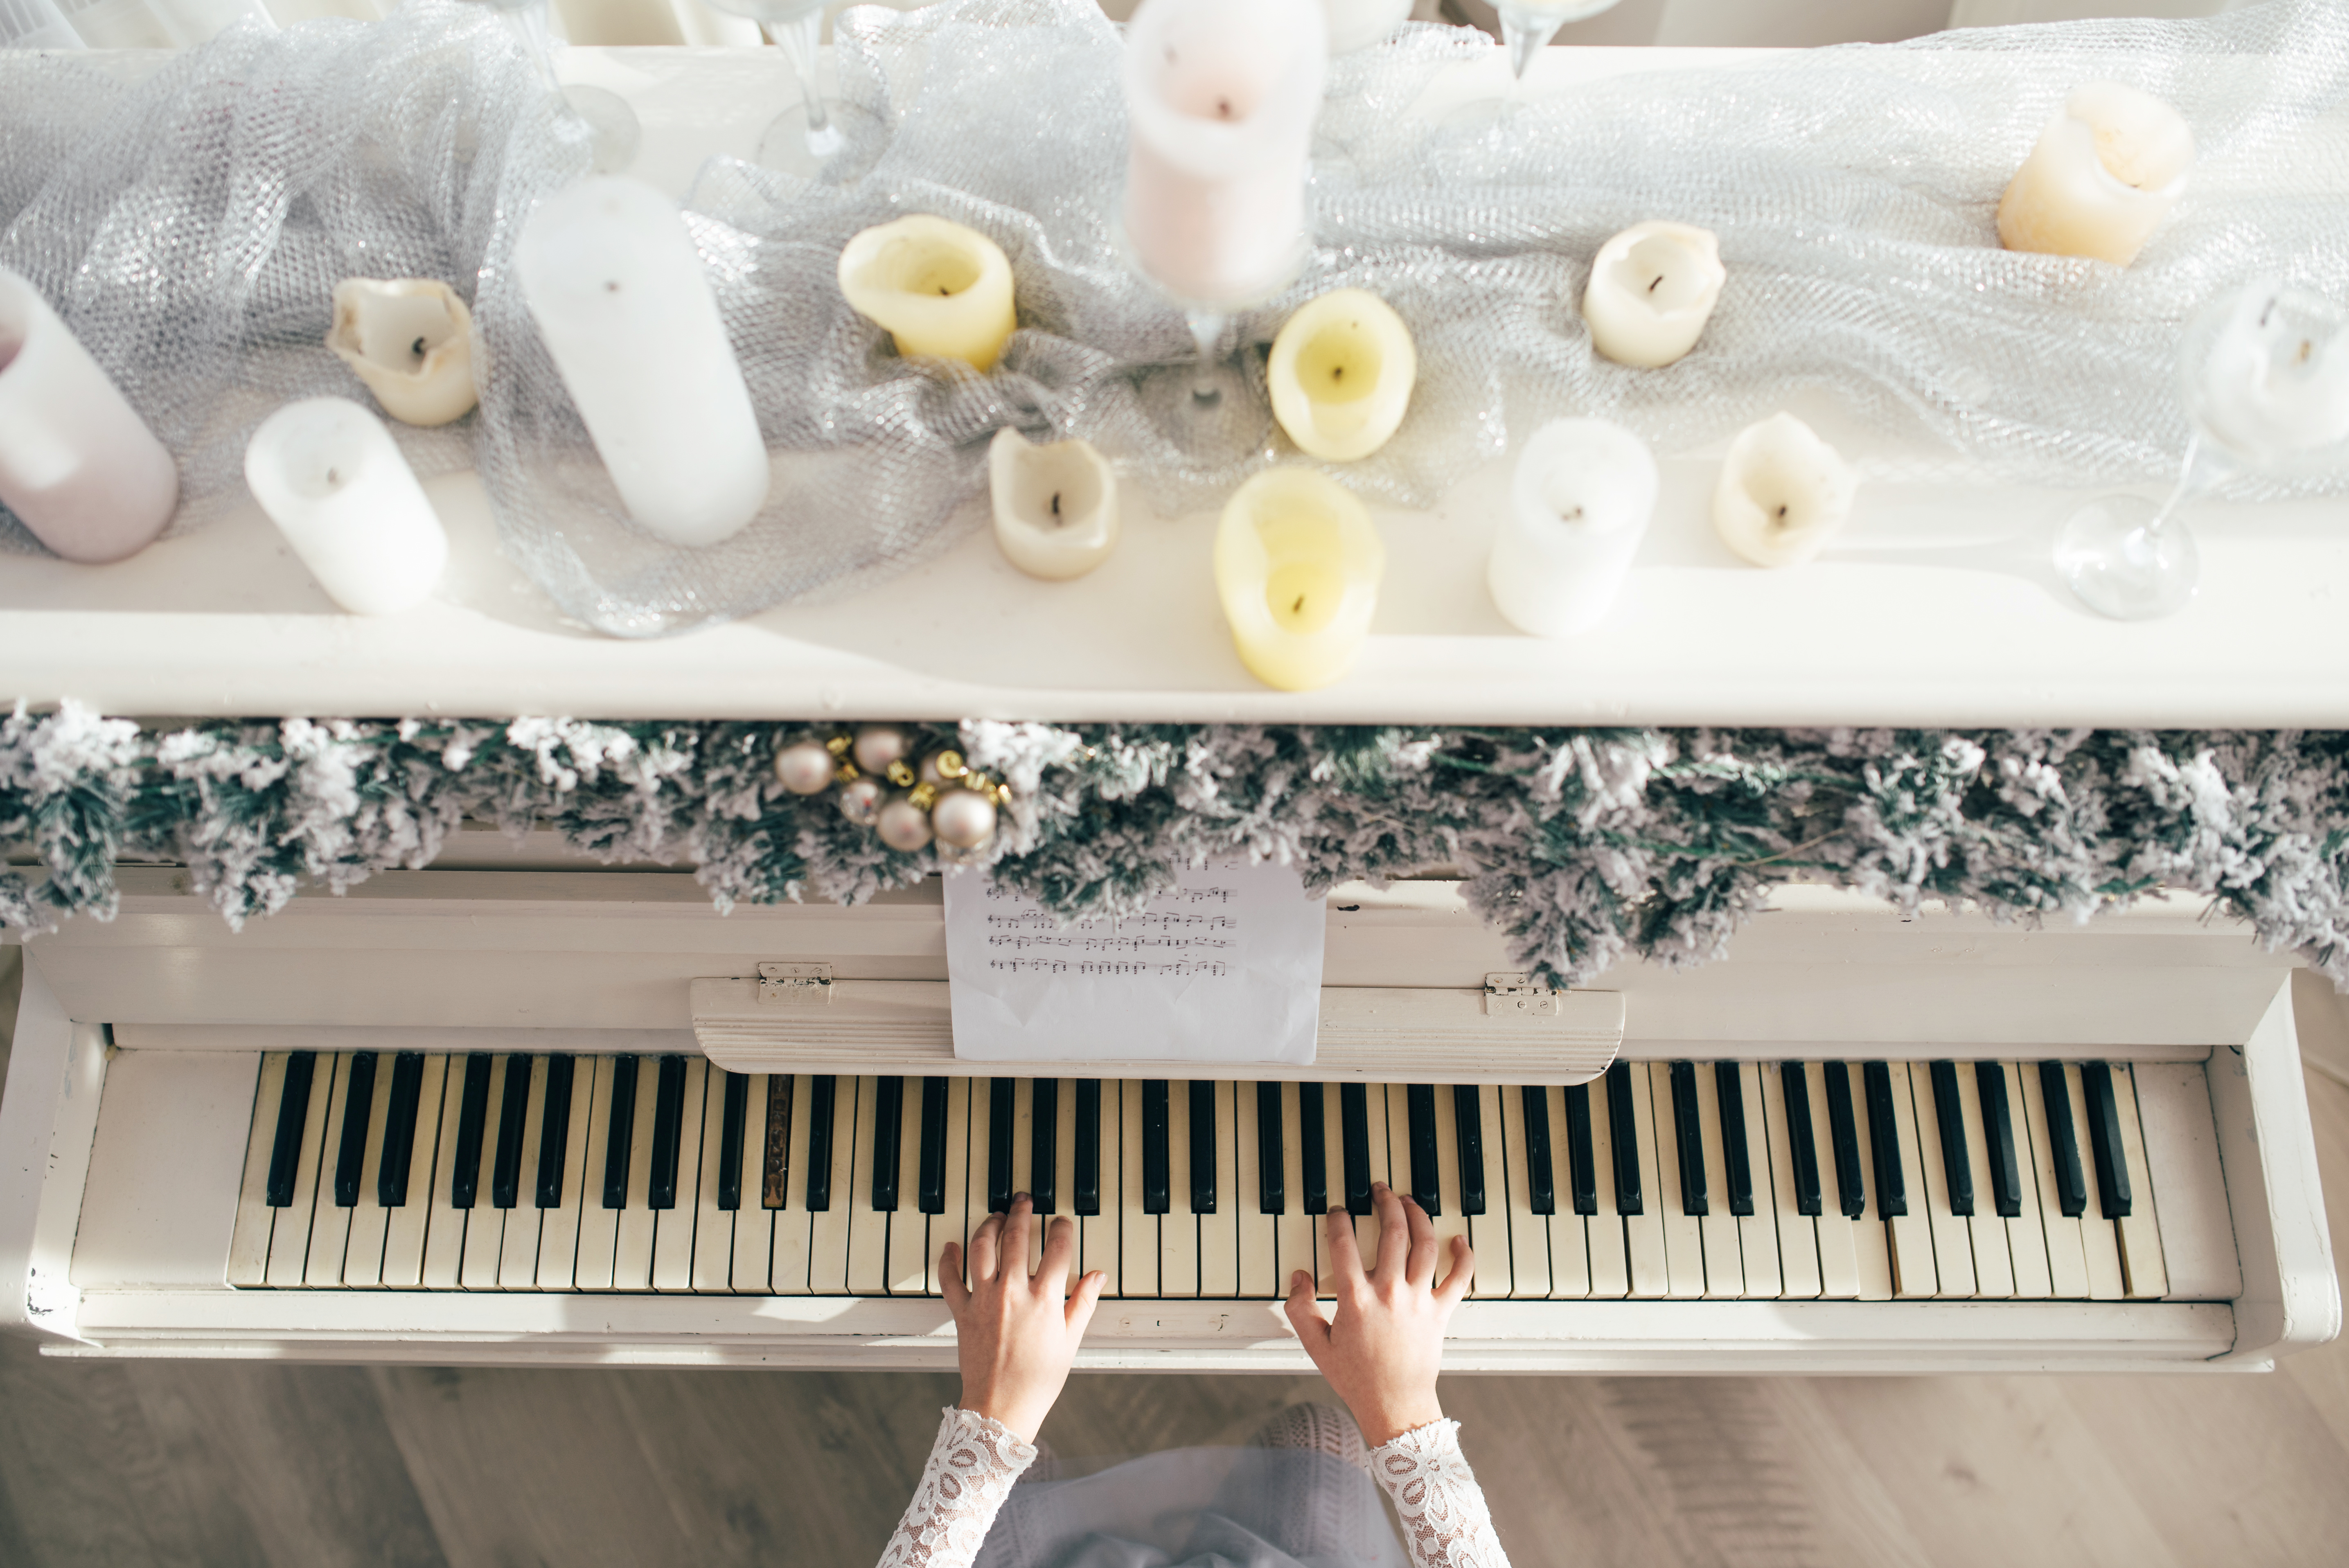 Stay in, avoid the cold, and take piano lessons